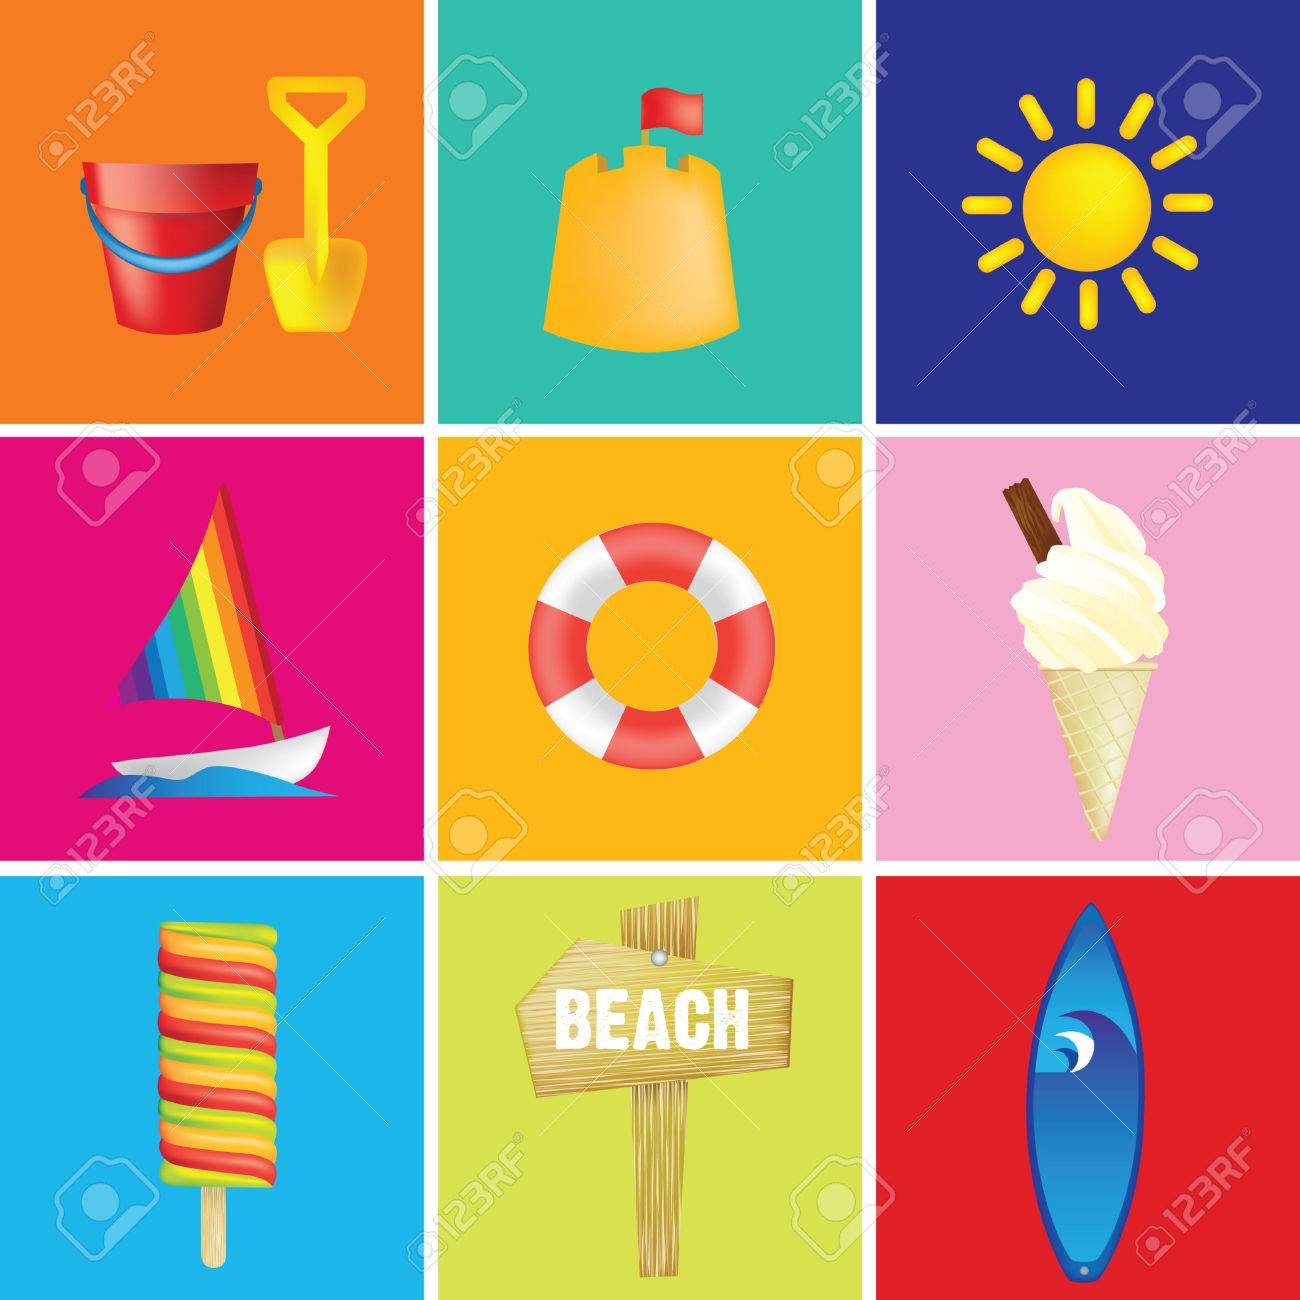 illustration of a beach or seaside holiday or vacation Stock Vector - 5343992